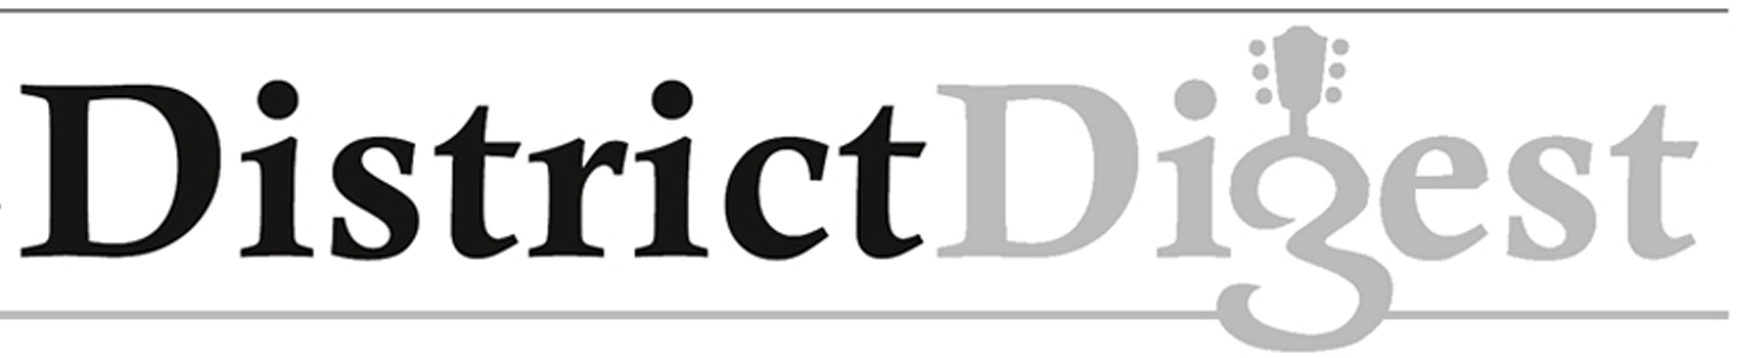 District Digest News Stories